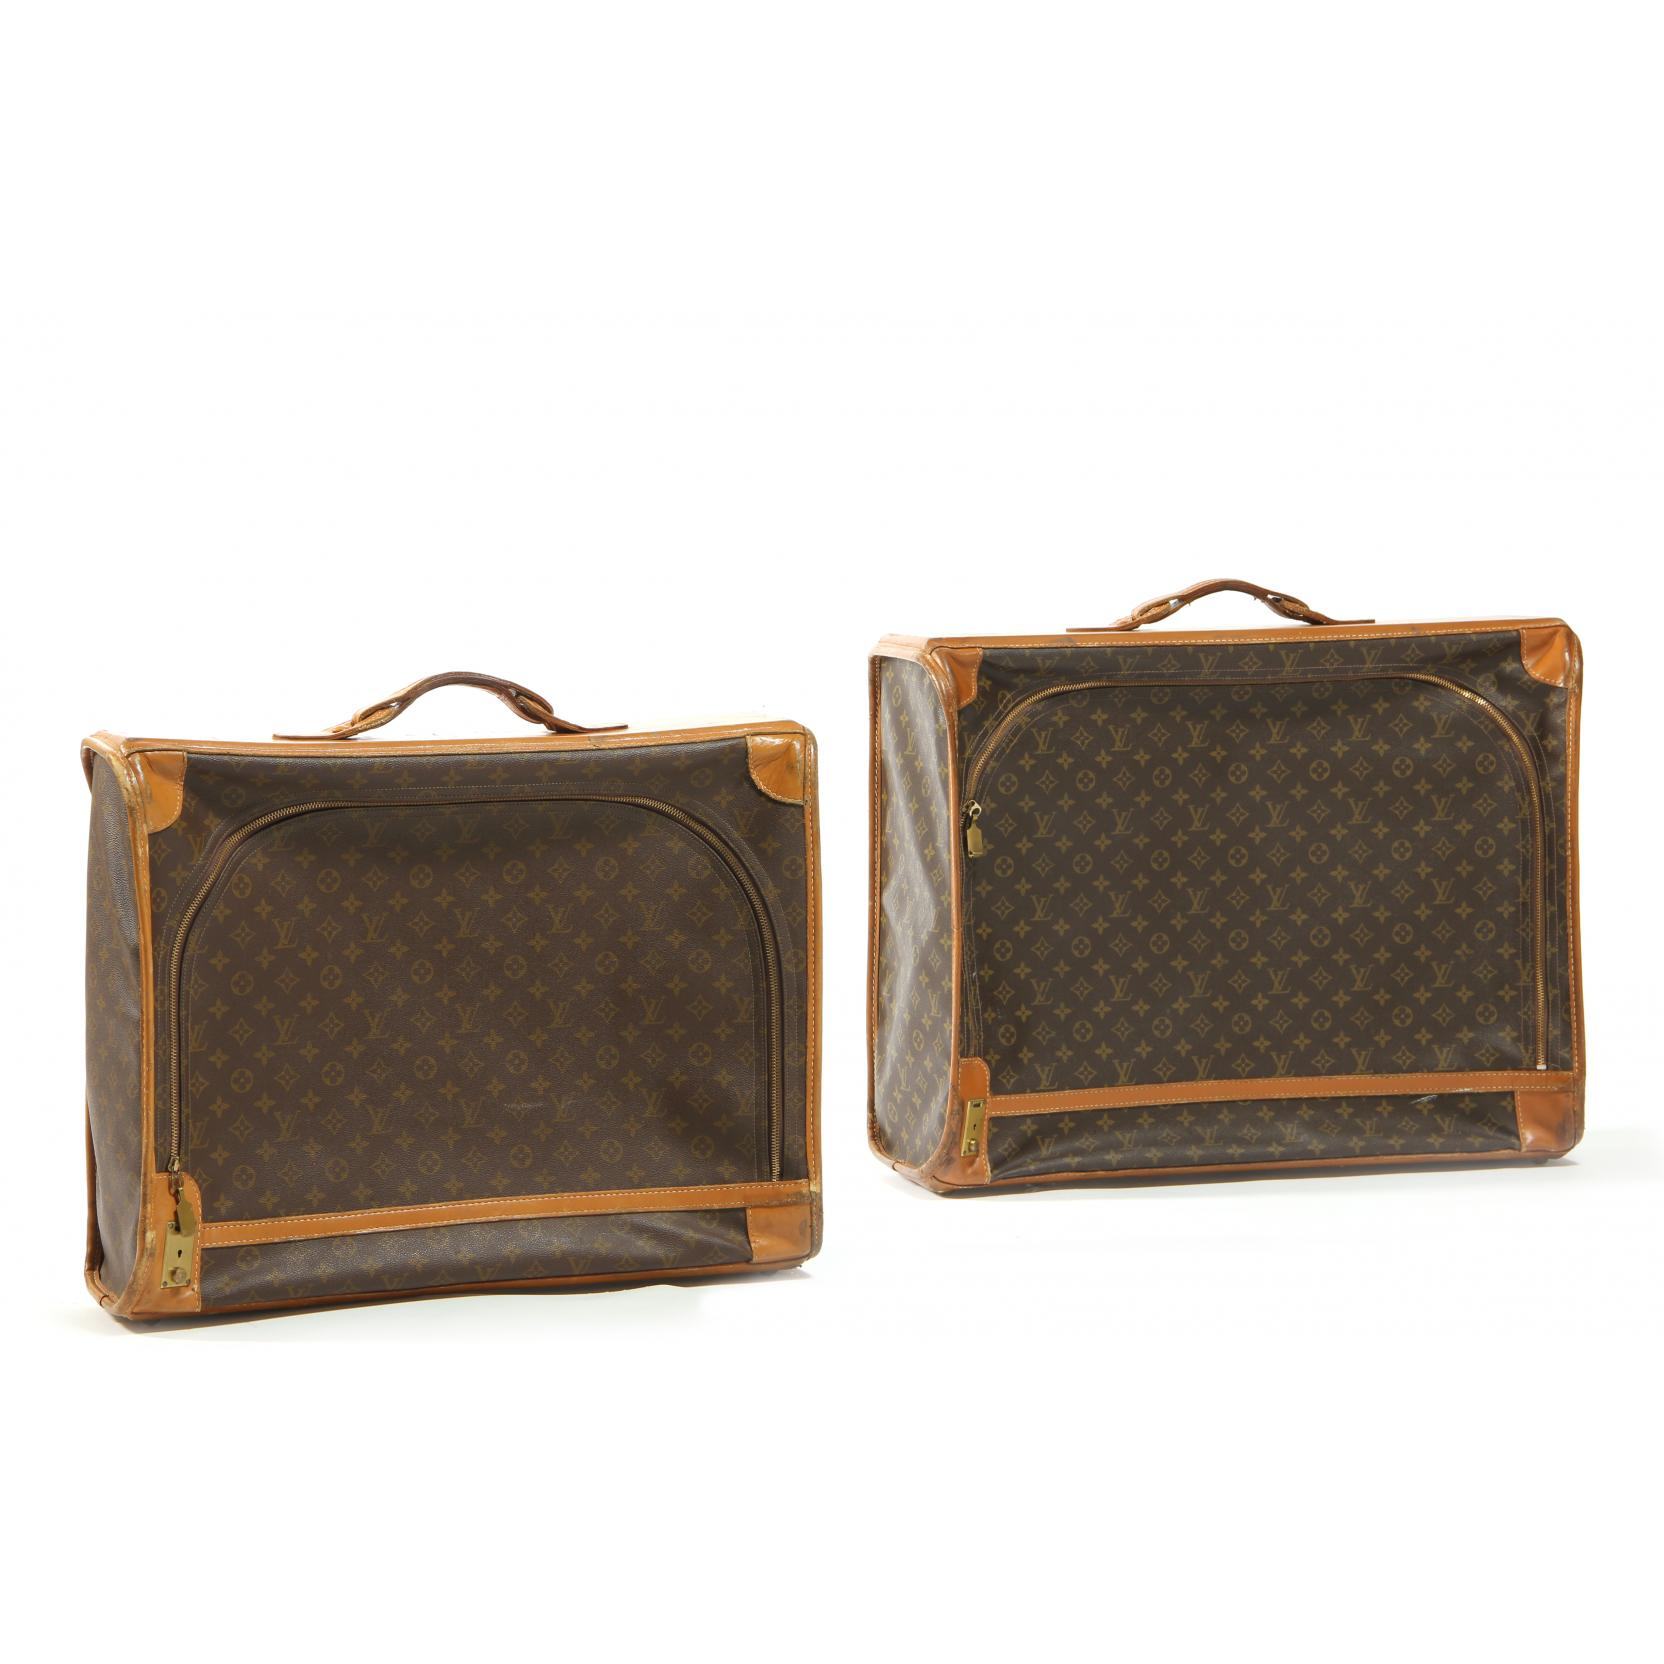 two-pullman-suitcases-the-french-company-for-louis-vuitton